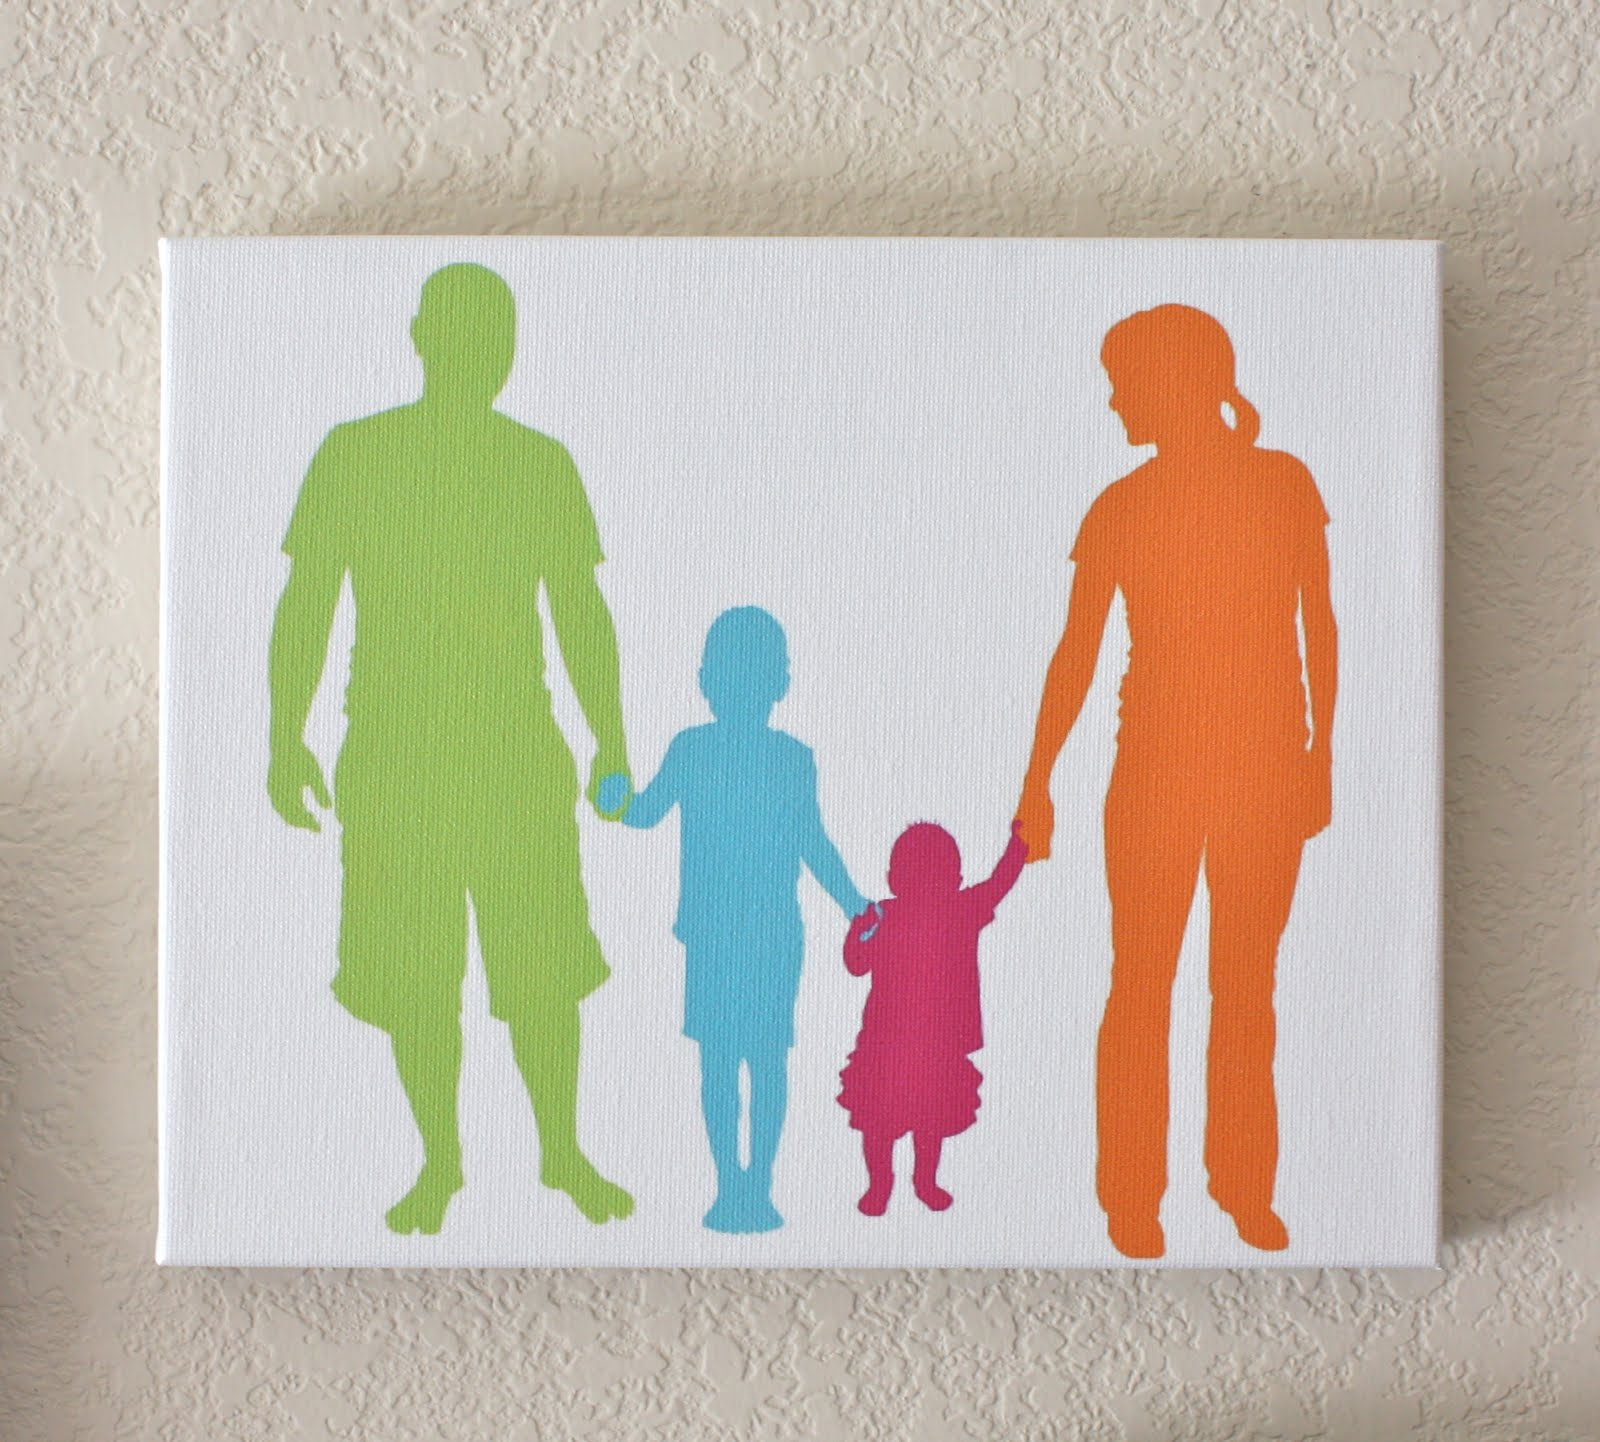 Our canvas prints are printed and stretched in-house and come ready to hang or display with a classic semi-gloss finish. To turn your pictures to canvas prints just choose your canvas size and wrap thickness, upload your pictures or art, and choose your border for a personalized canvas print .